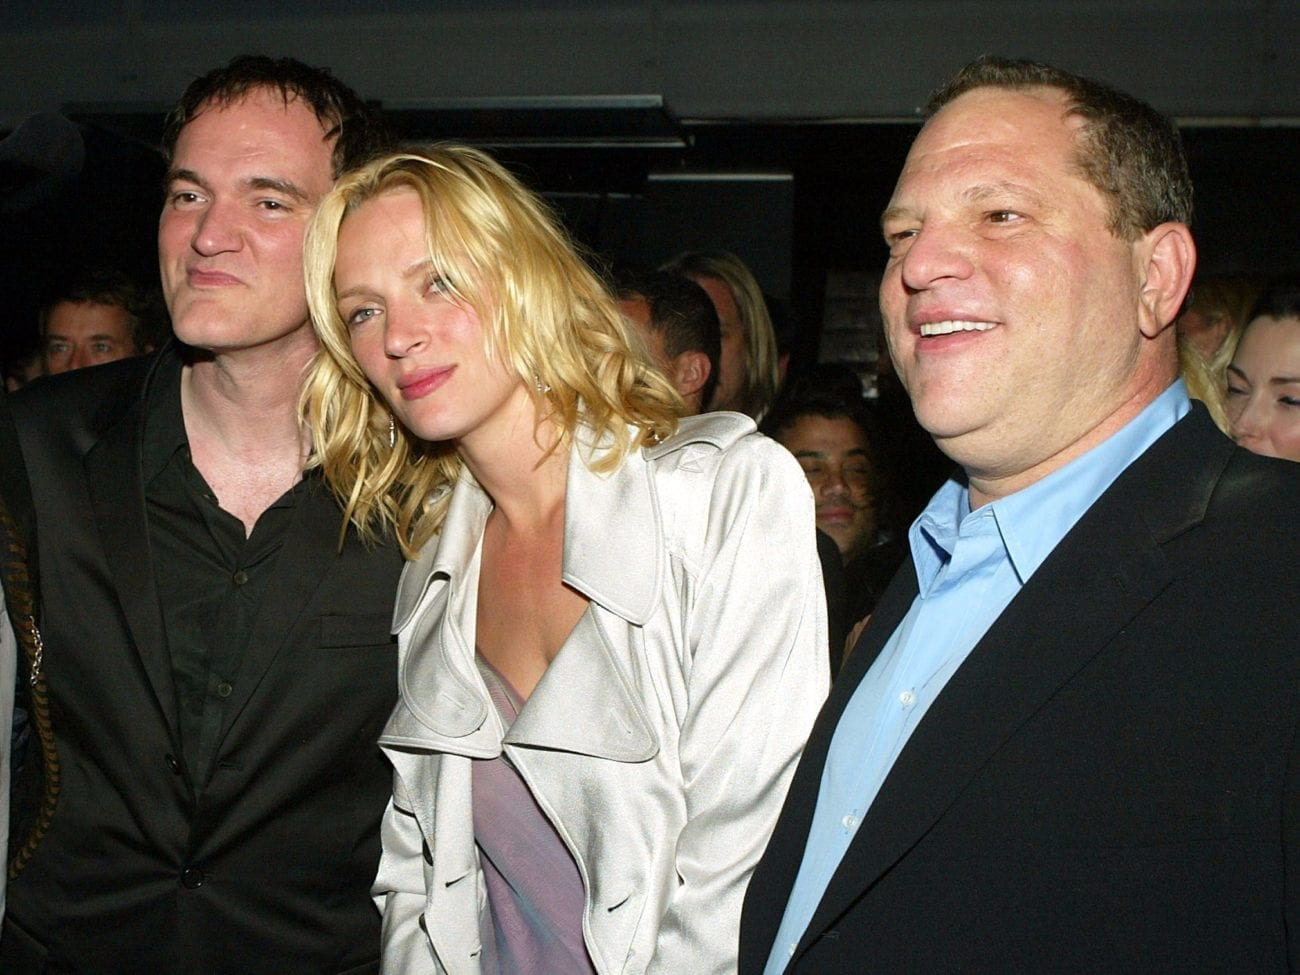 """In a November interview with Access Hollywood, actor Uma Thurman revealed she was """"waiting to feel less angry"""" until she could talk about sexual harassment and assault in Hollywood – a moment that appears to have arrived this past weekend."""